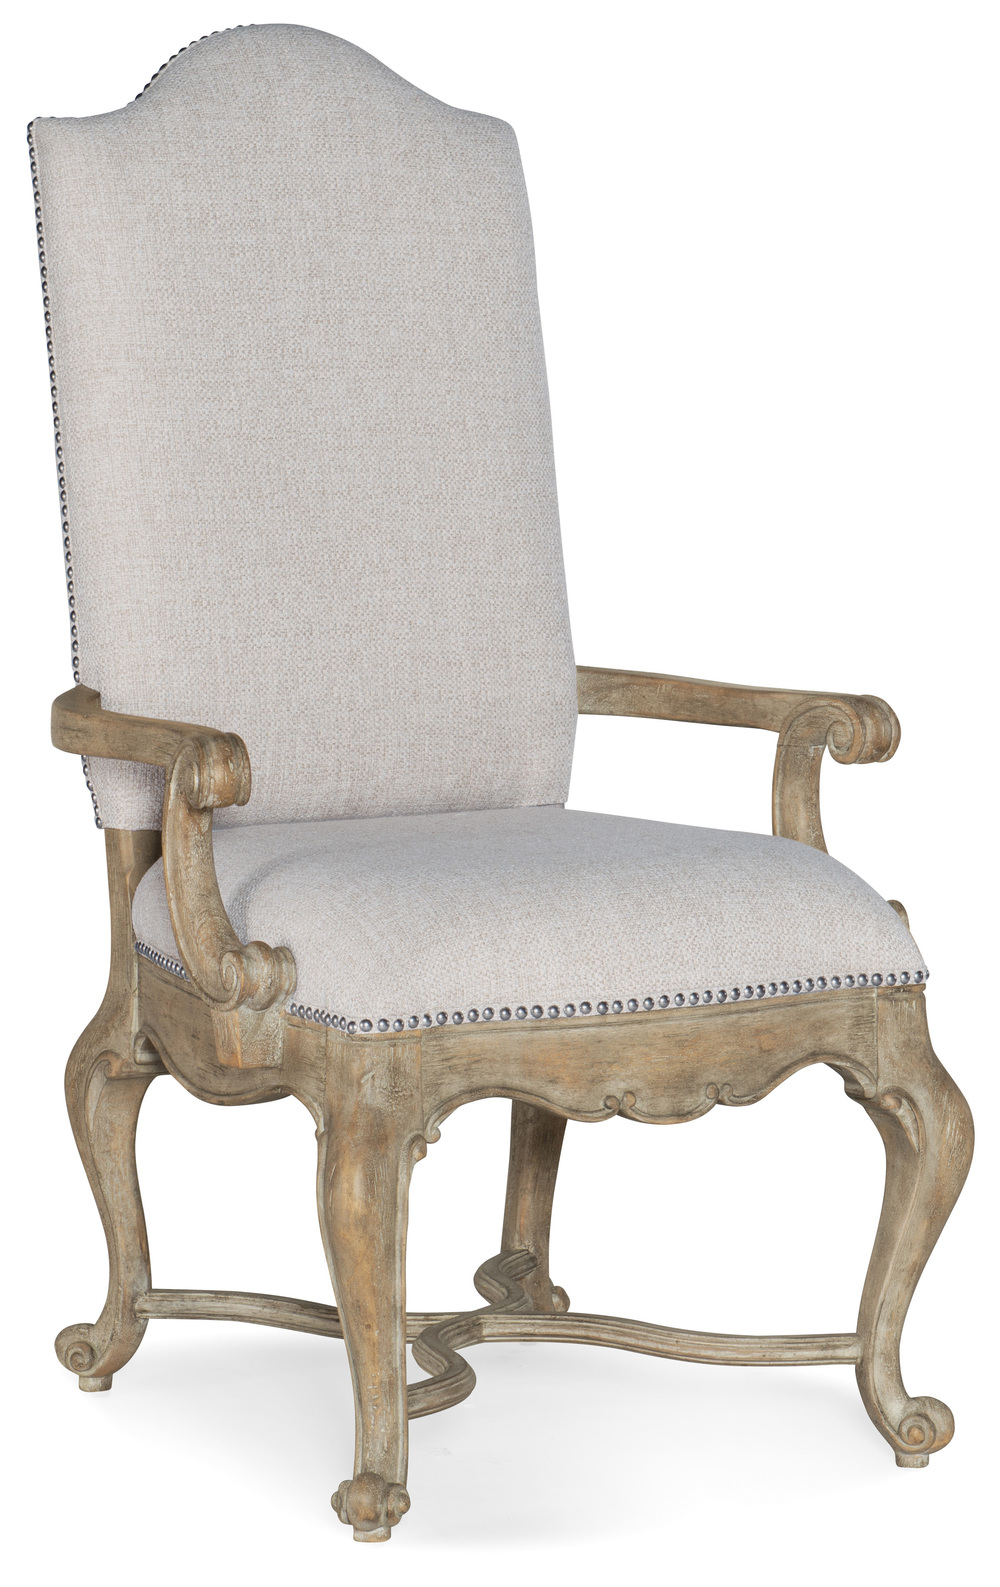 Hooker Furniture - Upholstered Arm Chair